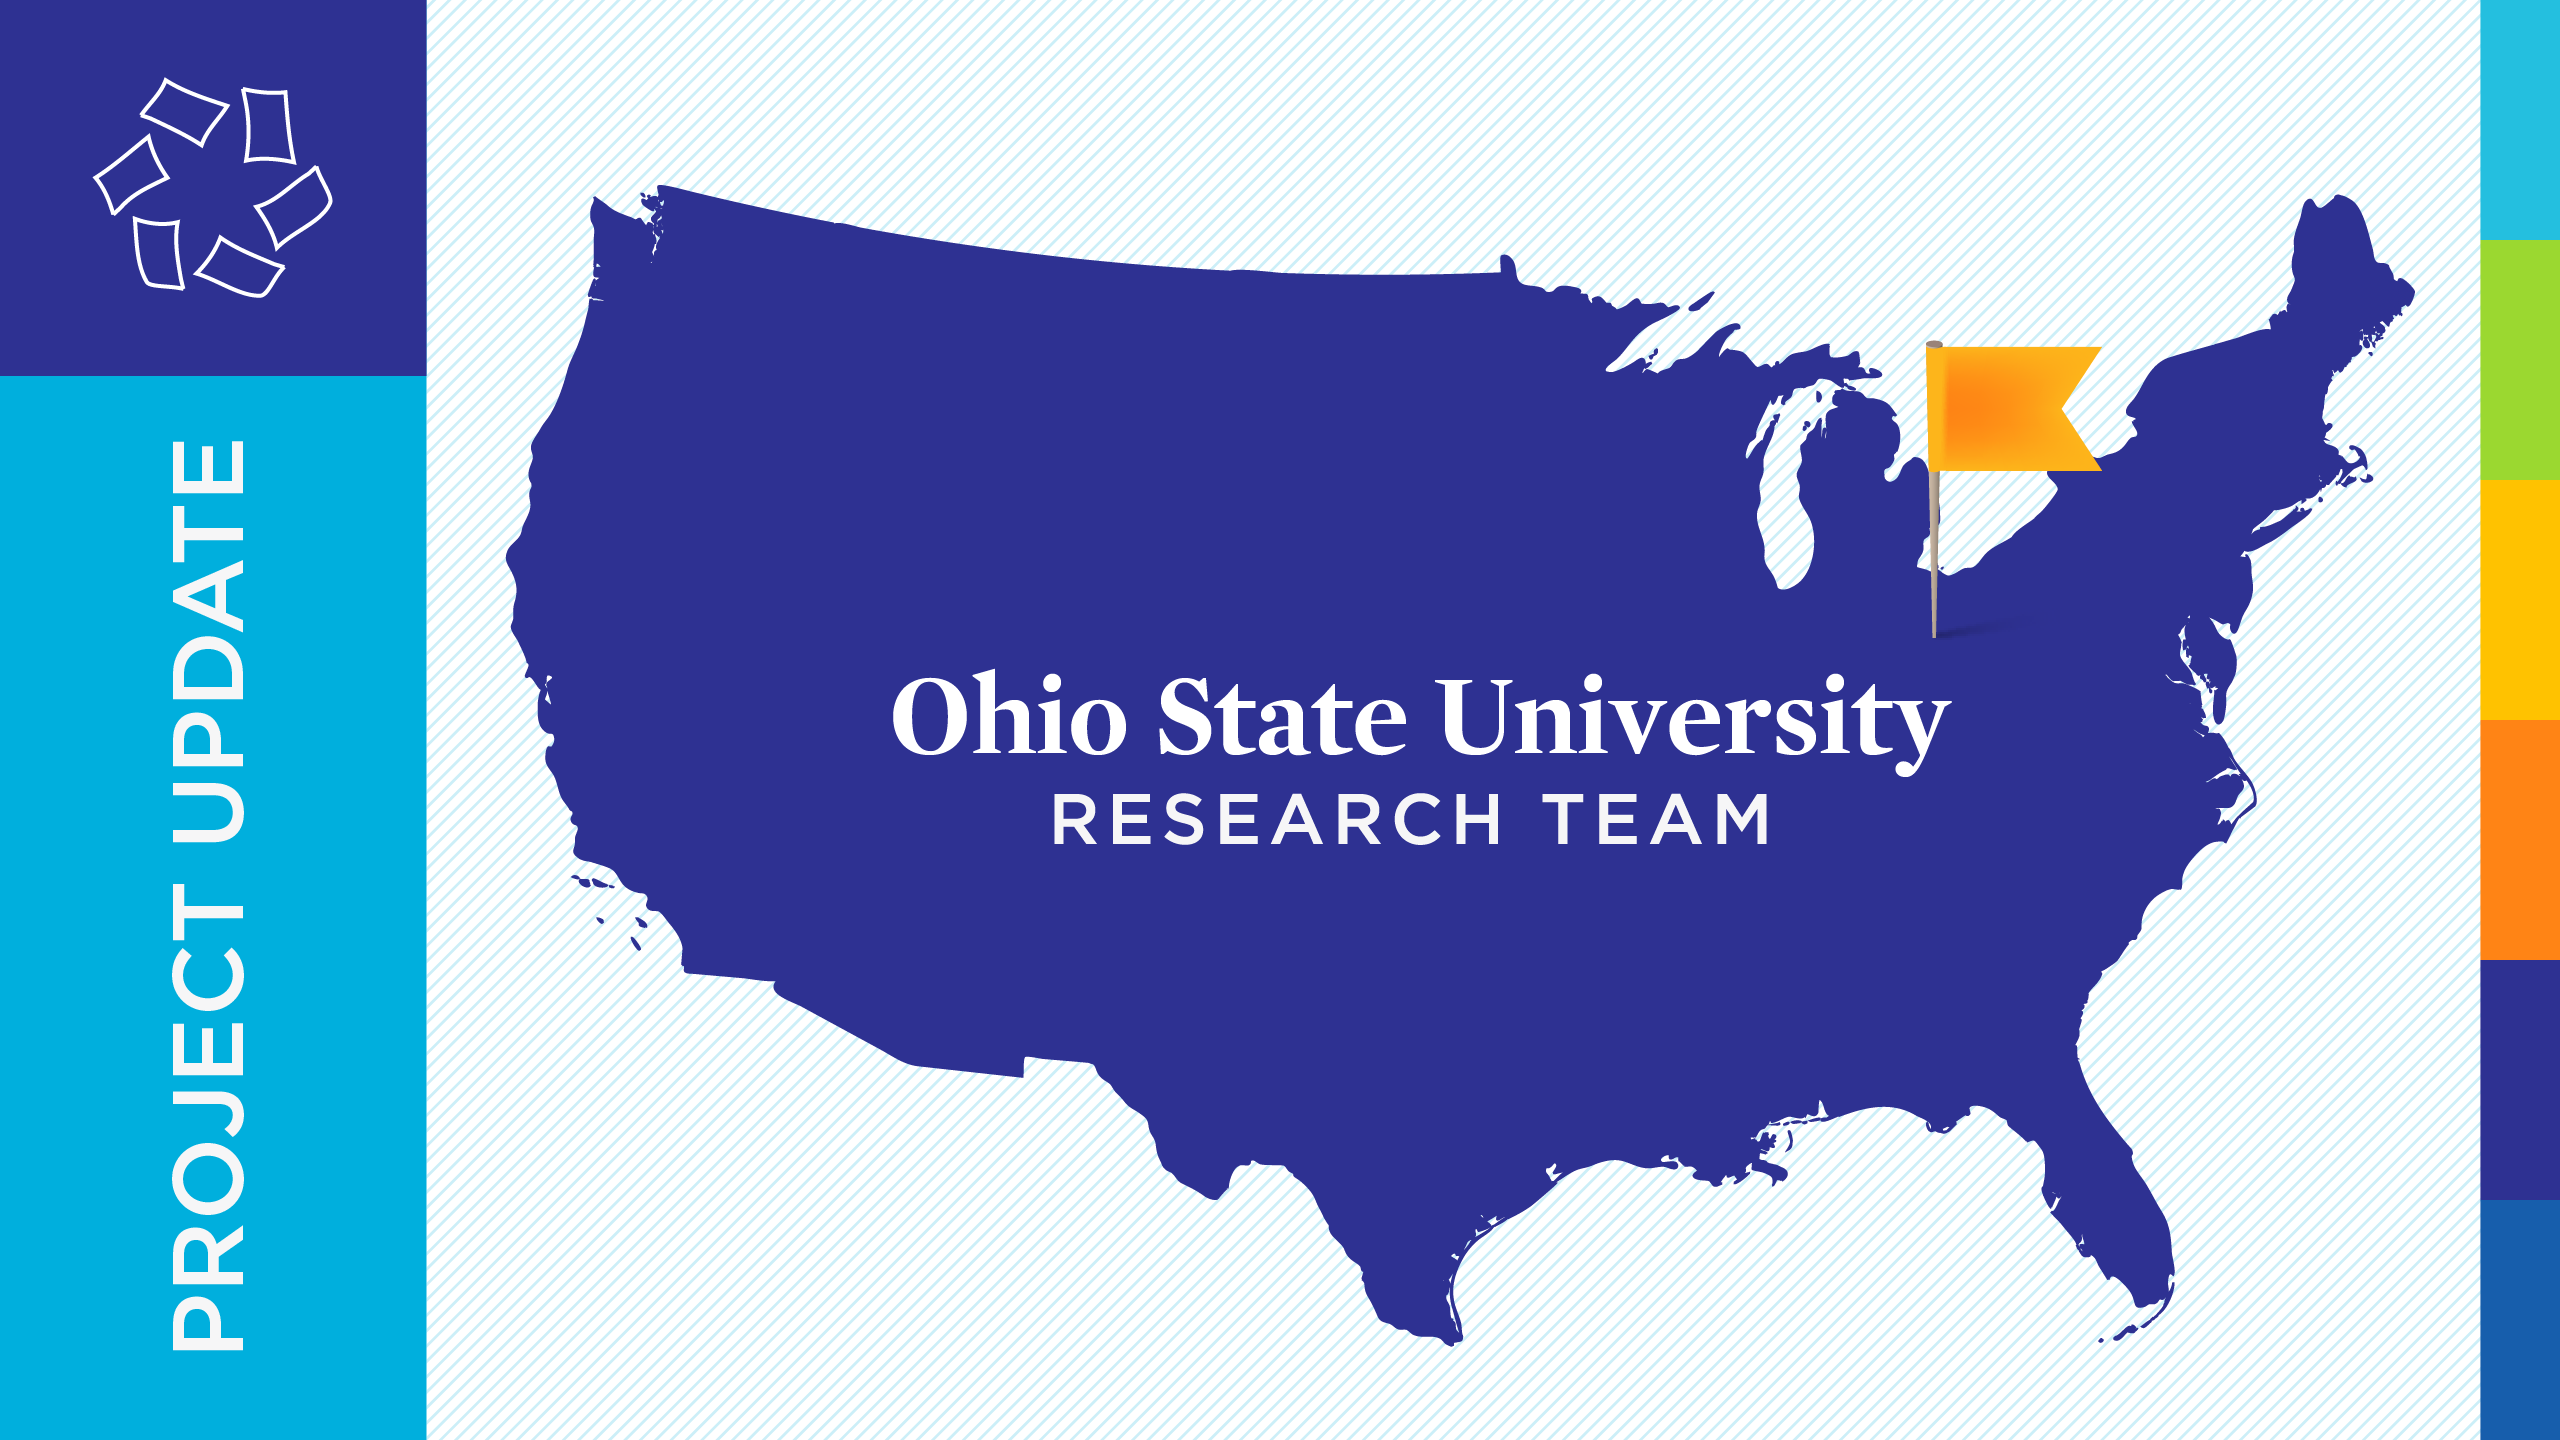 Ohio State University Research Team Map Graphic